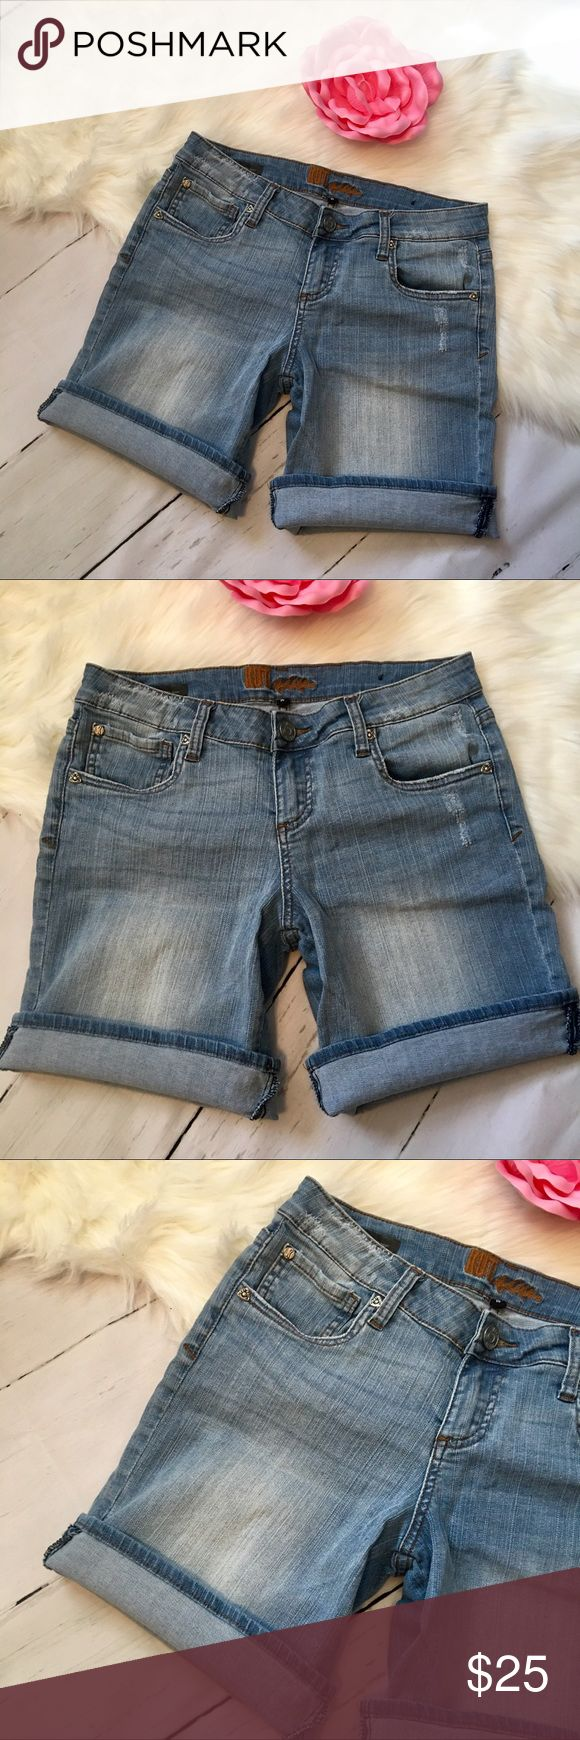 """KUT FROM THE KLOTH KATY BOYFRIEND JEAN SHORTS KFTK KUT from the KLOTH  Size 4  Katy Boyfriend Shorts  Light distressed wash  Factory Distressing  5 pockets, belt-loops, zip fly & button closure  Waist 30""""  Front Rise 8.5""""  Inseam 9.5"""" uncuffed  Leg cuff opening 20"""" total  Please consider all photos as part of item description!  Pet & Smoke free home  Ships next business day! Kut from the Kloth Shorts Jean Shorts"""